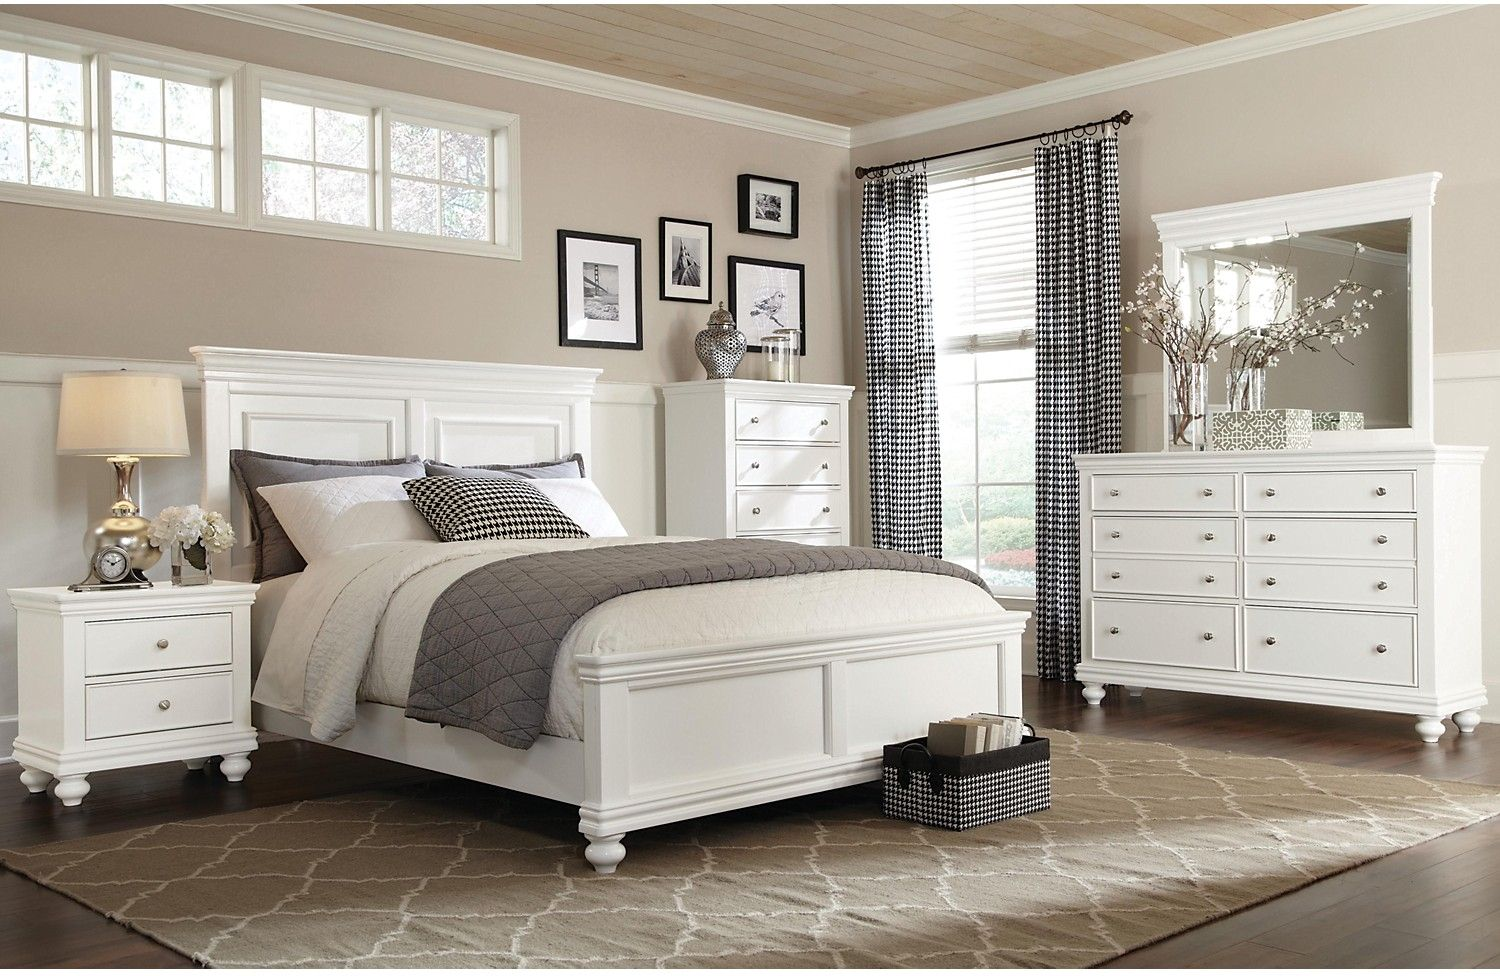 Bridgeport Piece Queen Bedroom Set White Queen Bedroom Sets - Queen bedrooms